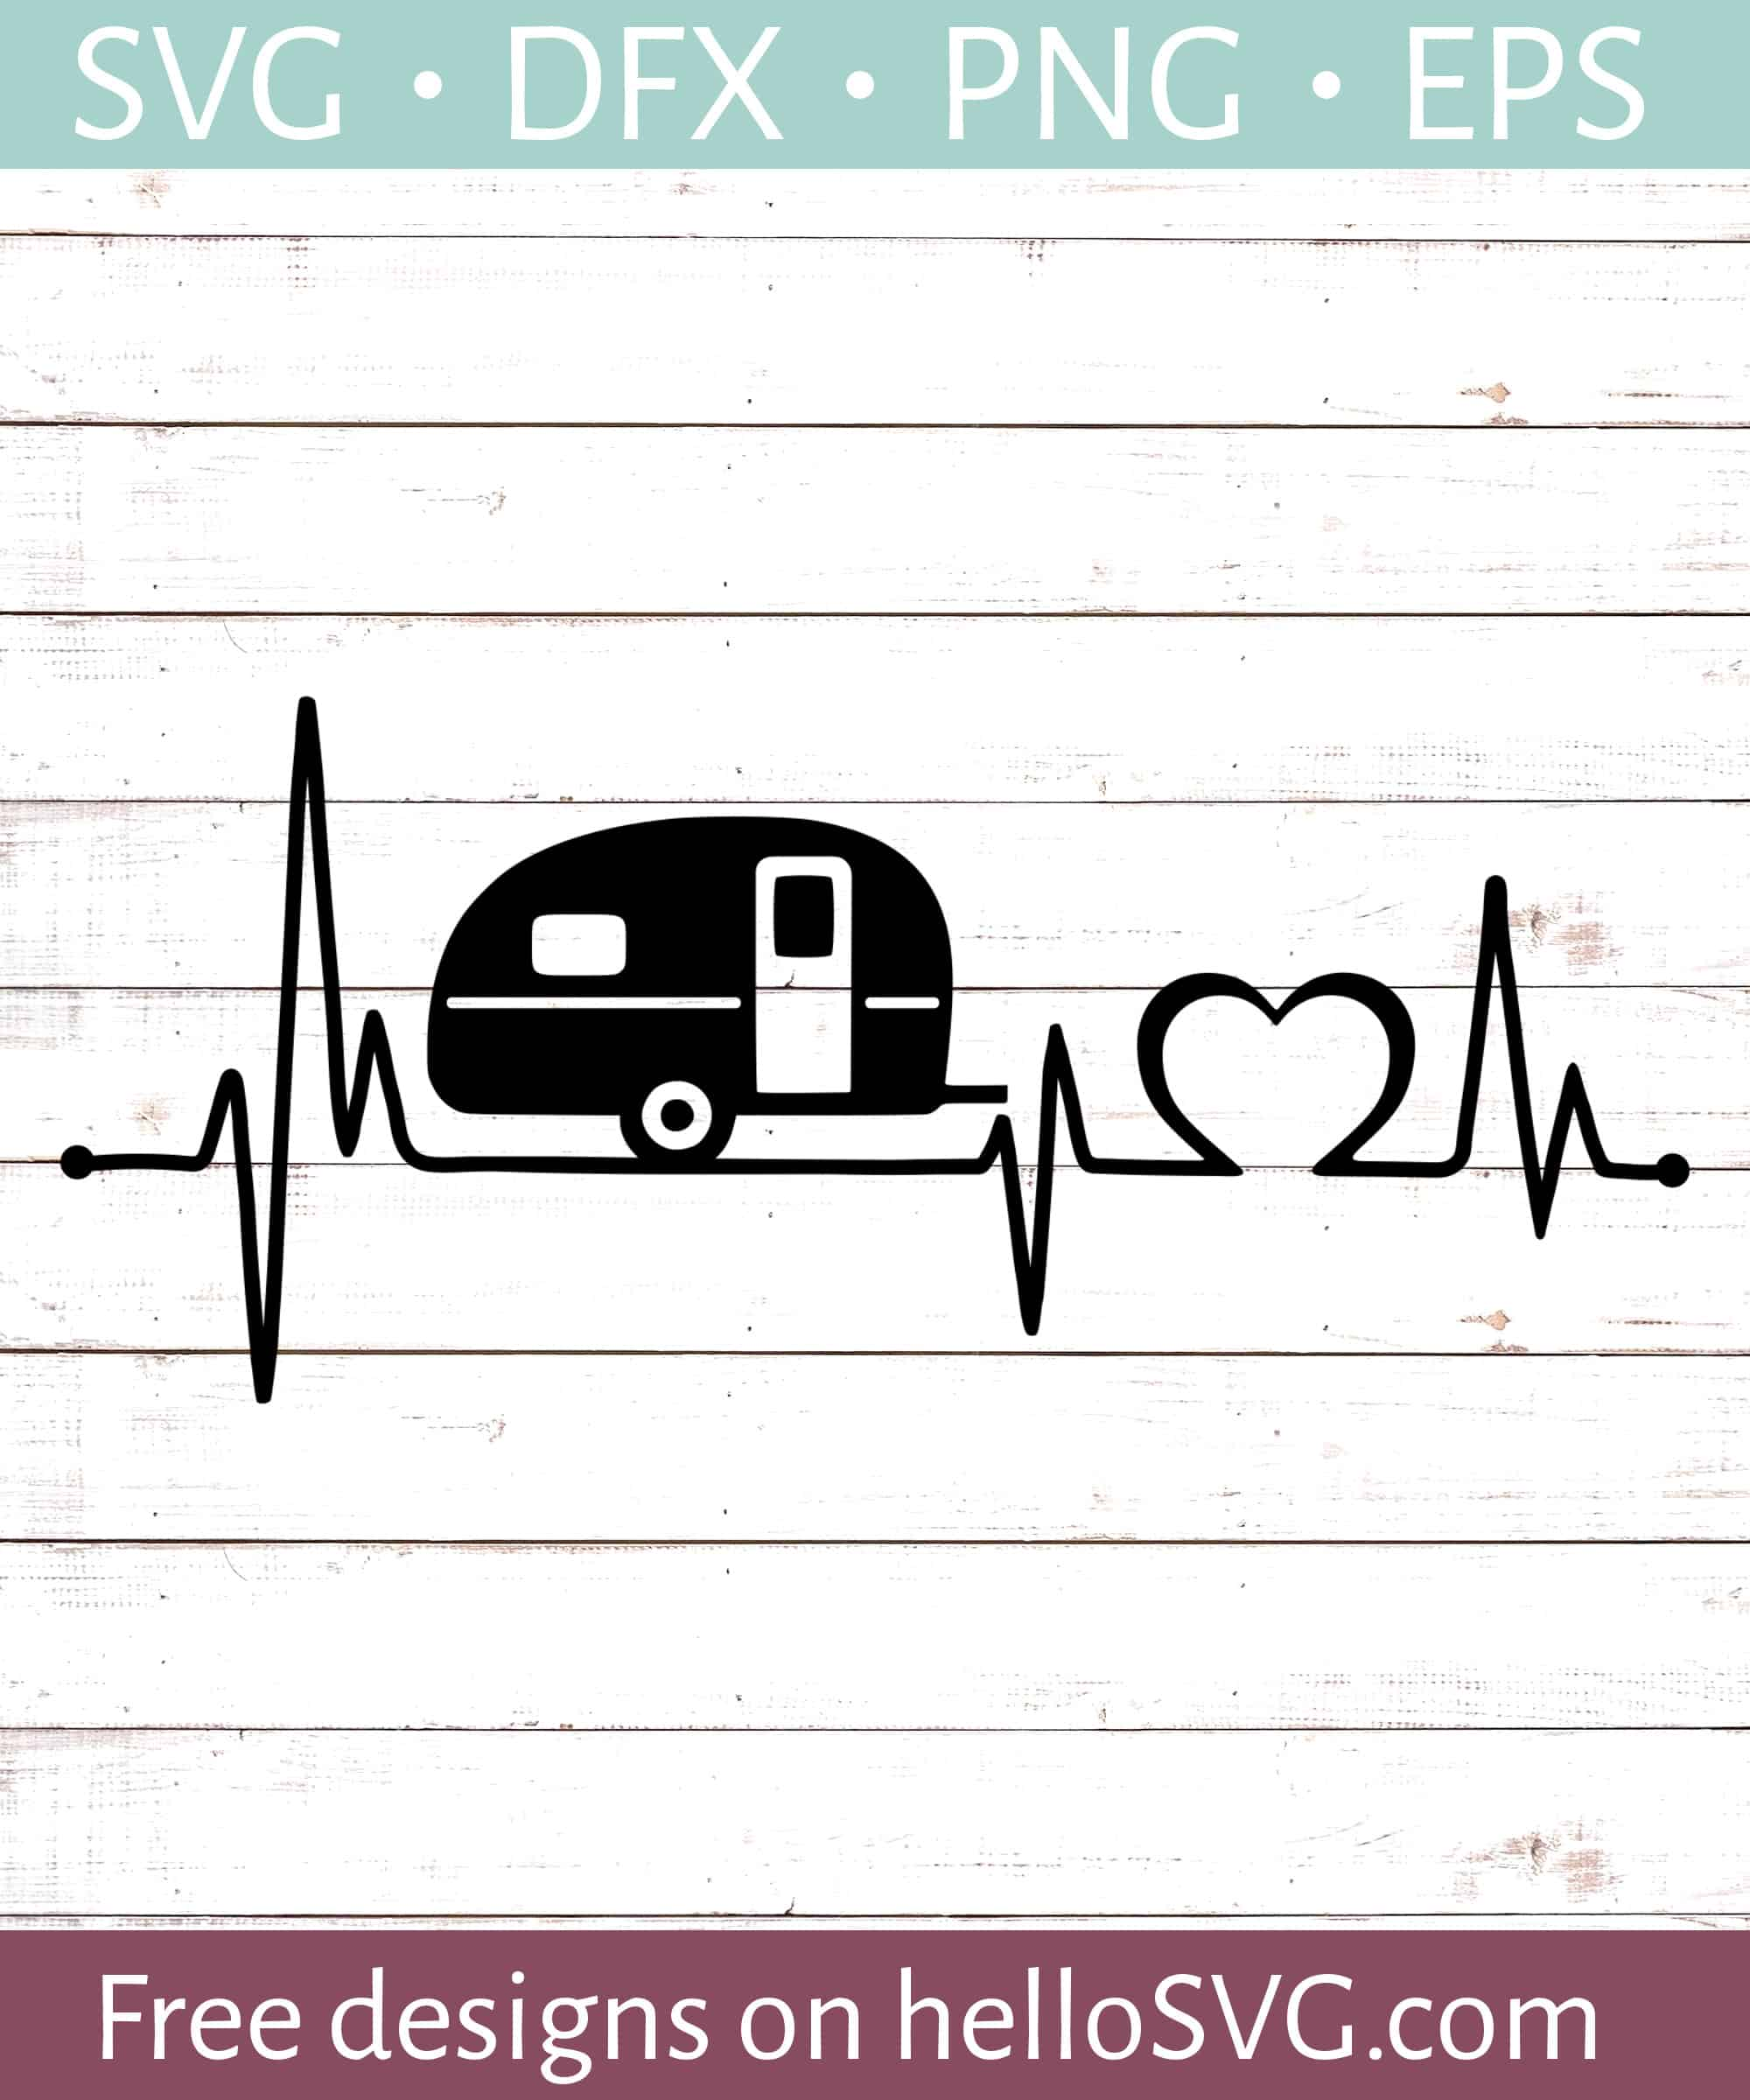 Rv Svg : Heartbeat, Camper, Files, HelloSVG.com